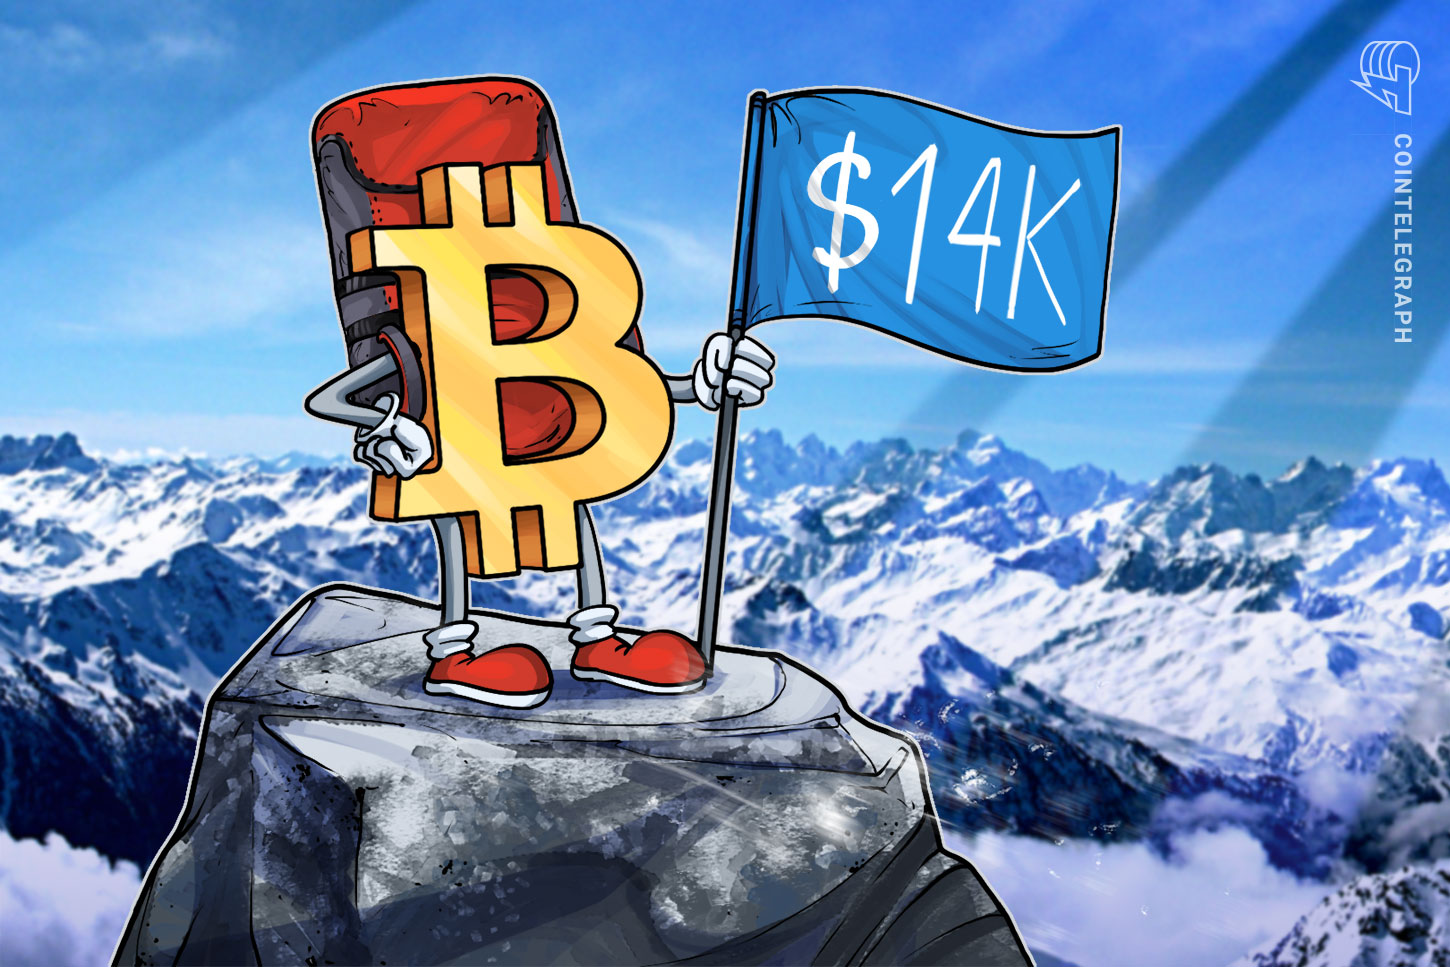 Bitcoin reaches $14K for the first time since January 2018 — what's next?